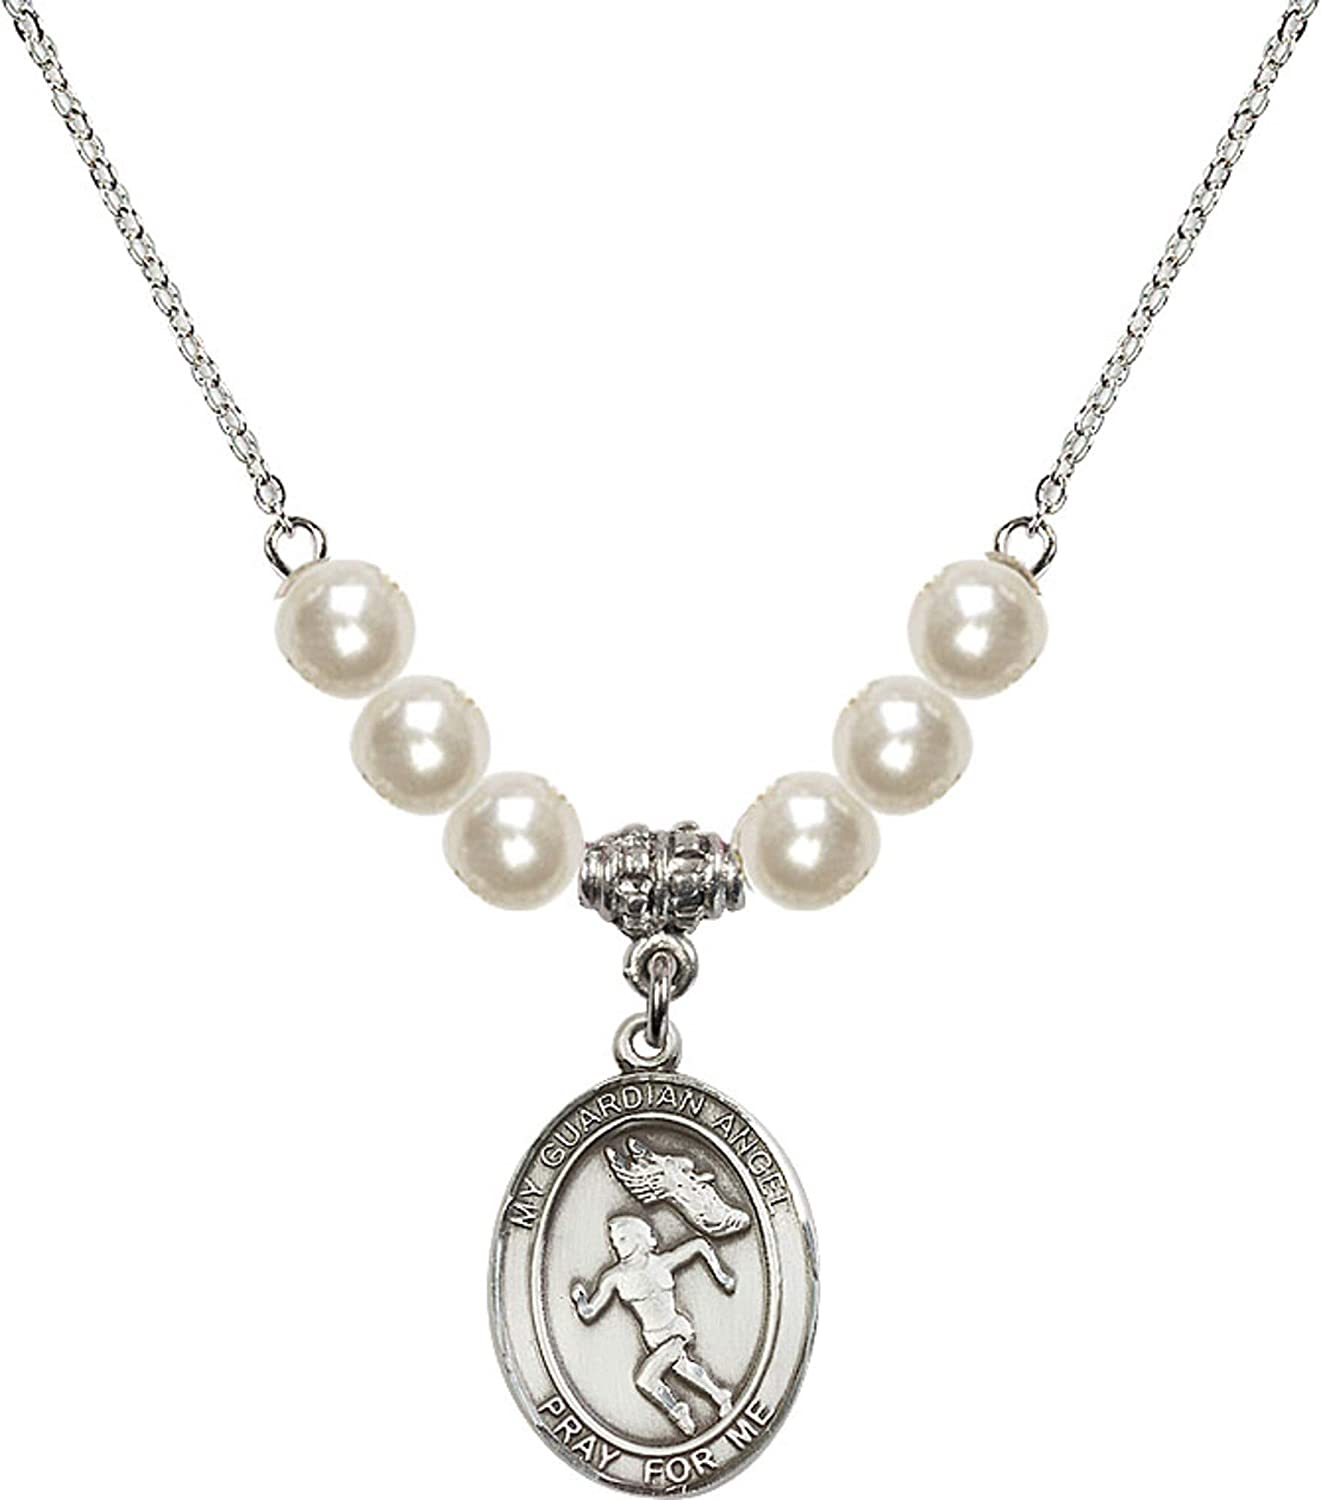 Bonyak Jewelry 18 Inch Rhodium Plated Necklace w// 6mm Faux-Pearl Beads and Guardian Angel//Track/&Field-Women Charm